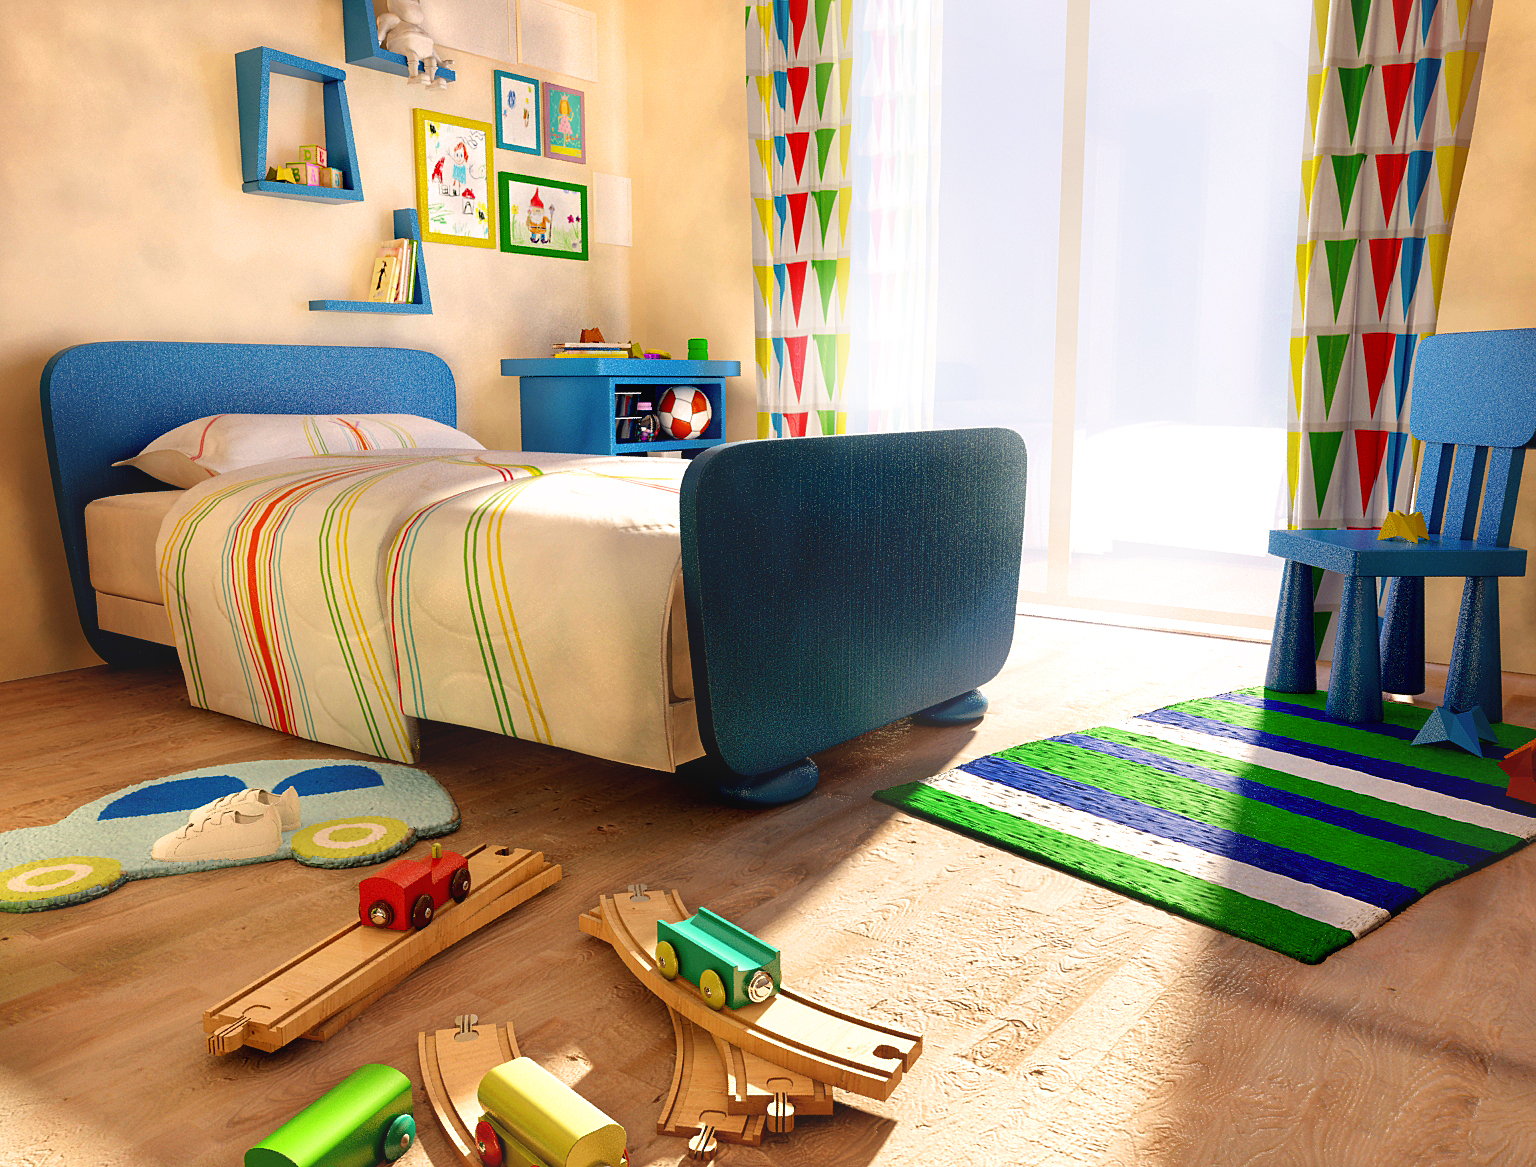 Kid Bedroom By 0217 On DeviantArt